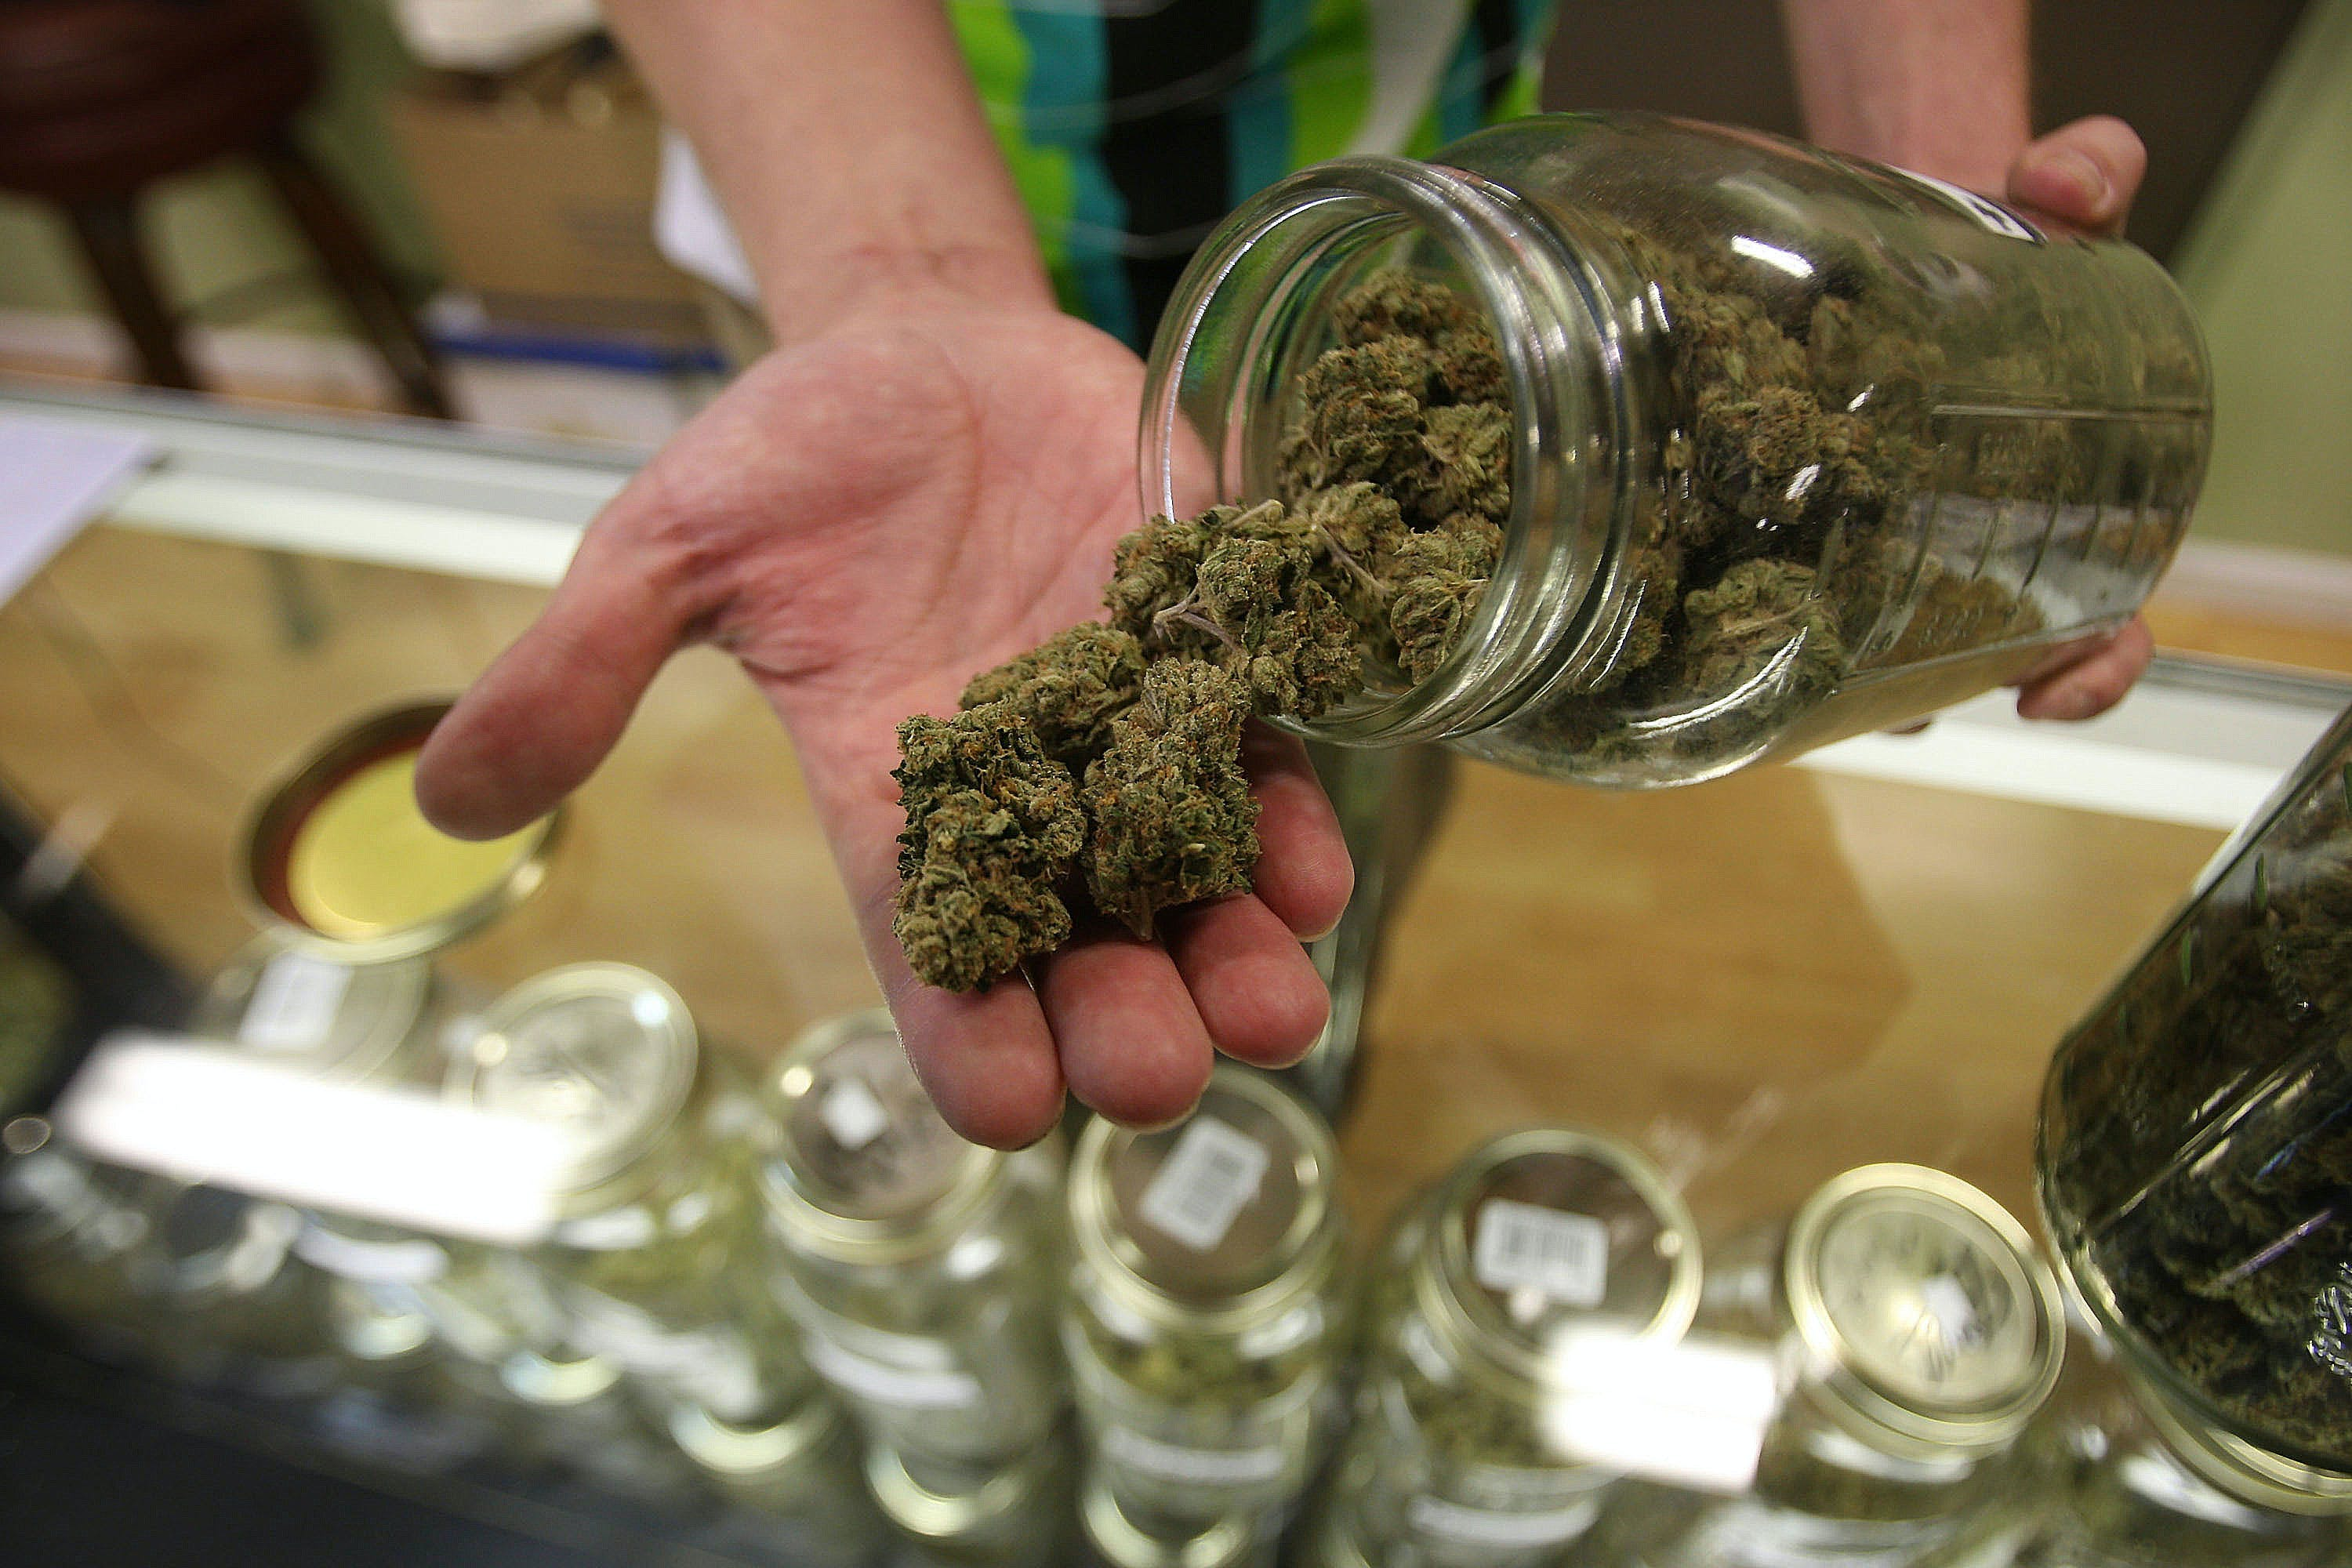 Cannabisdispensary1 How to talk to teens about cannabis, according to a weed industry expert